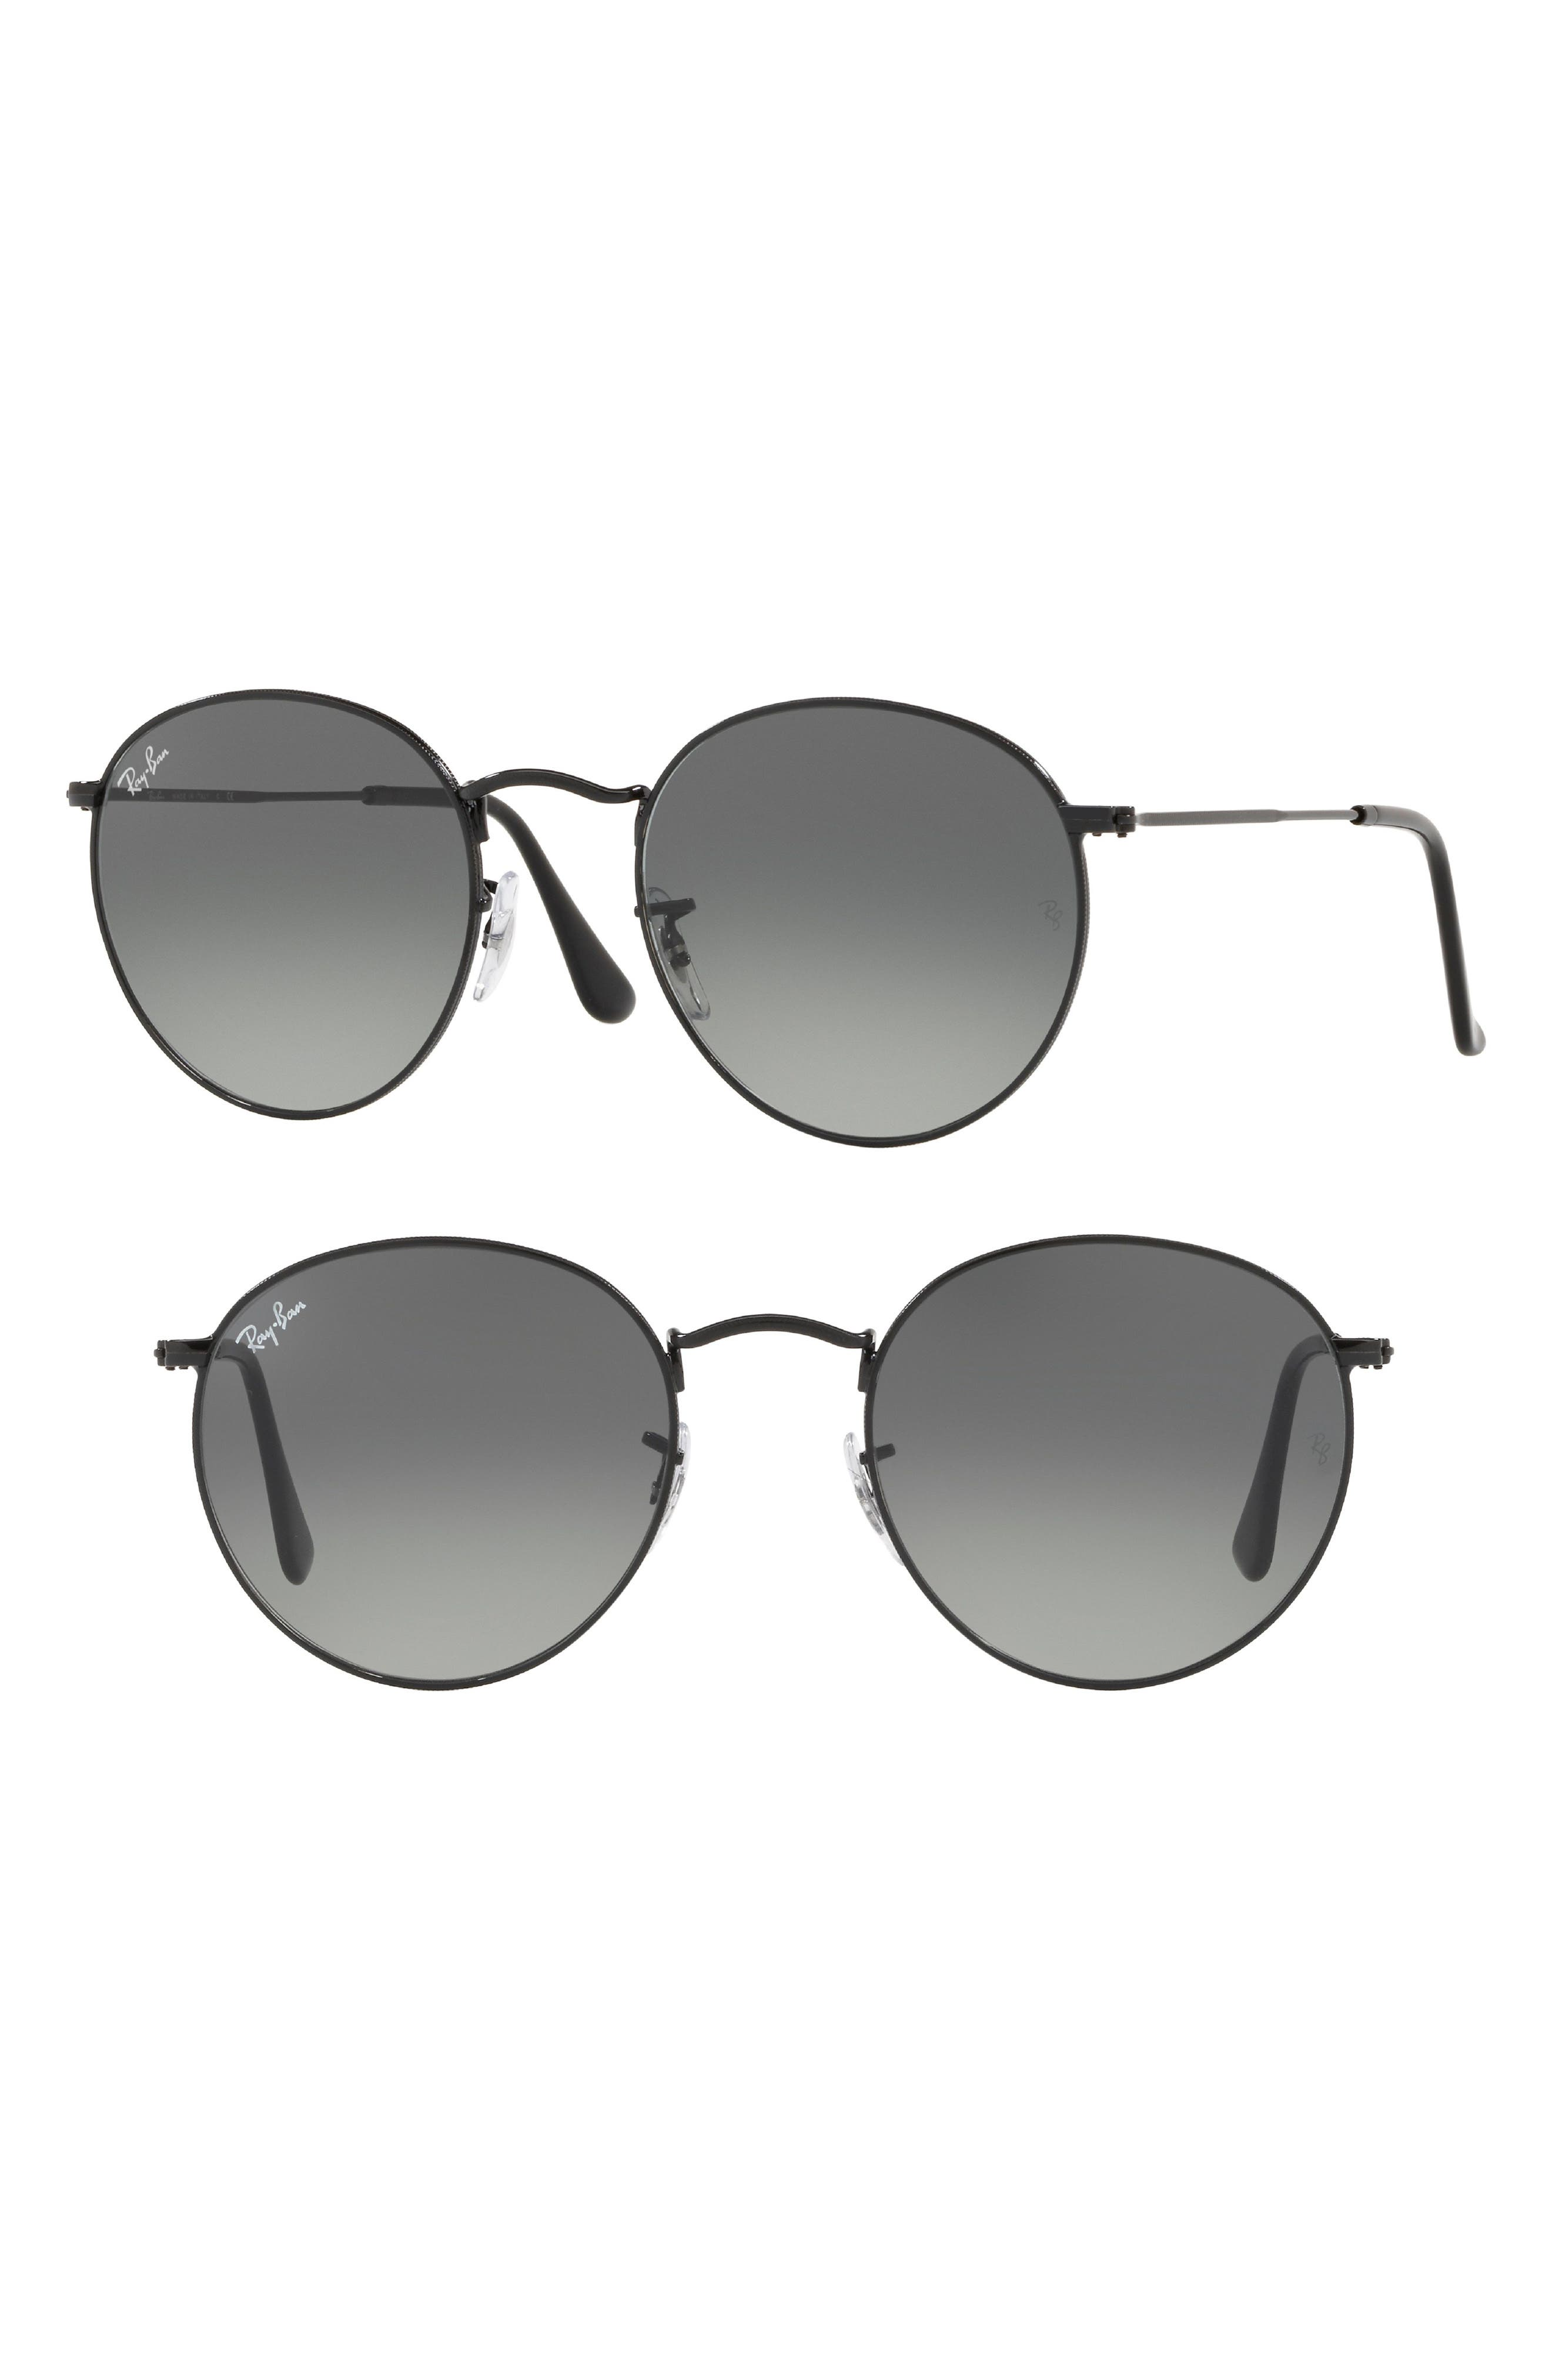 53mm Round Retro Sunglasses,                         Main,                         color, Black